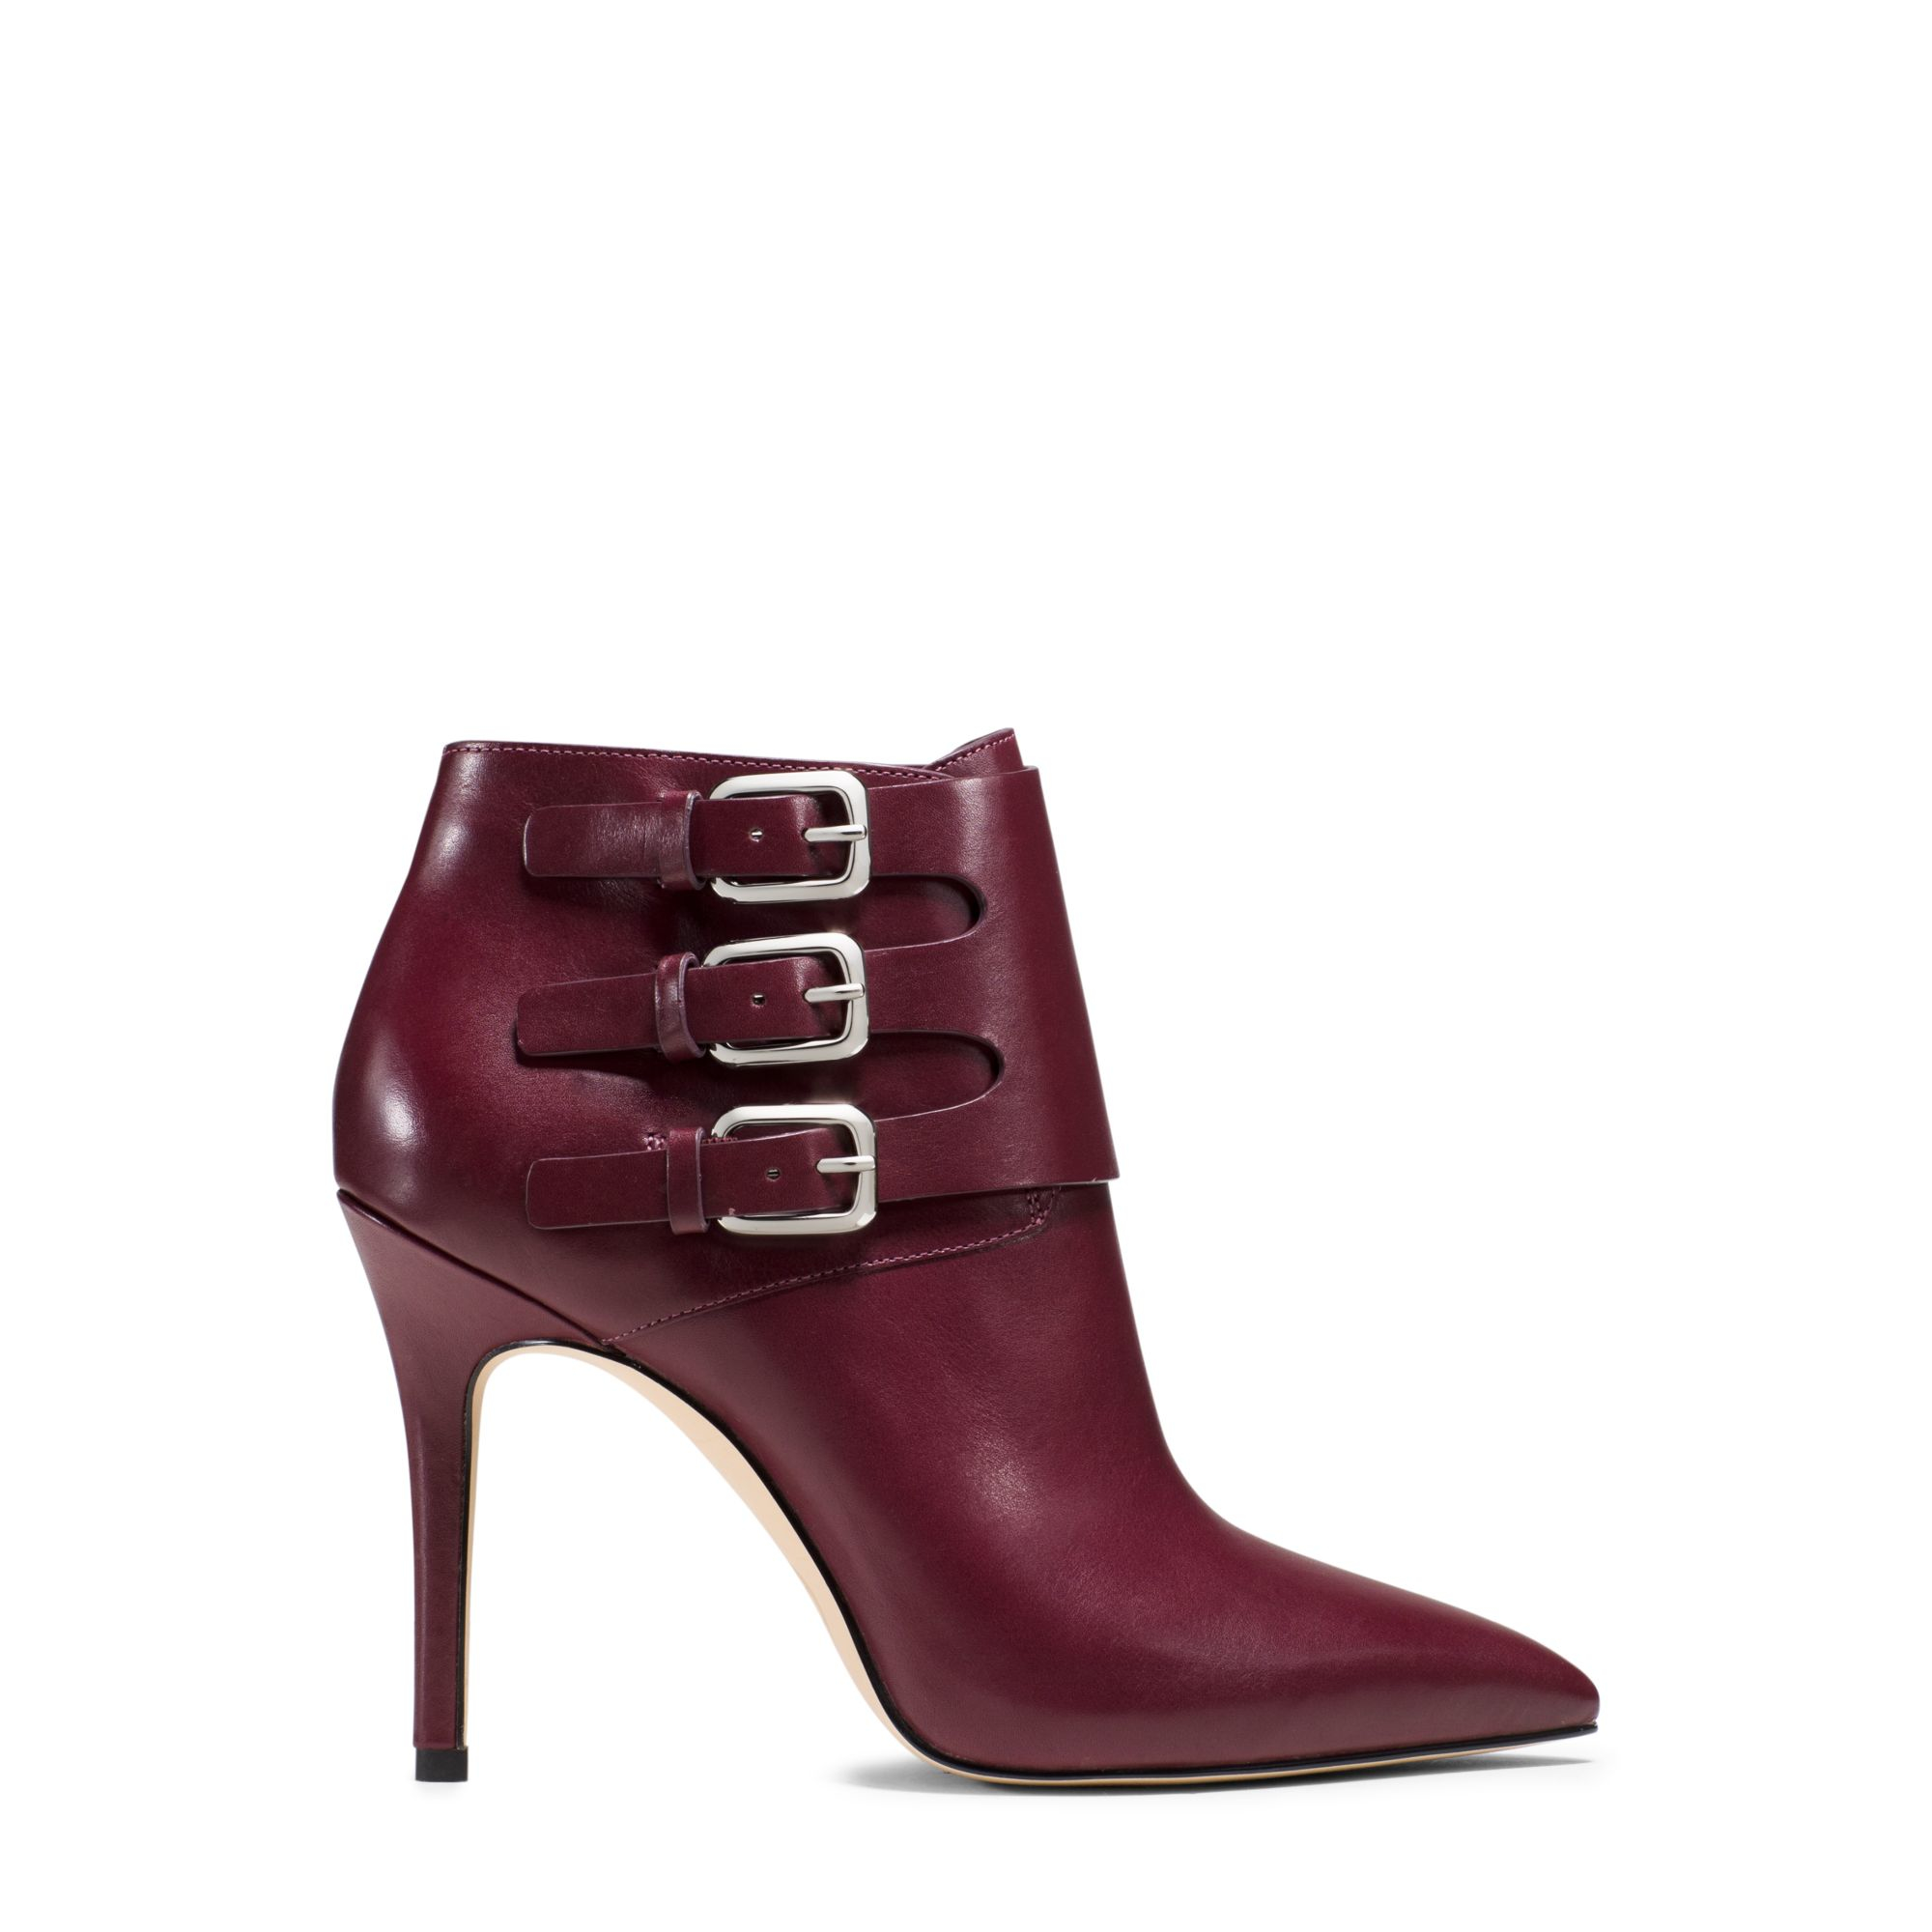 michael kors prudence leather ankle boot in purple merlot